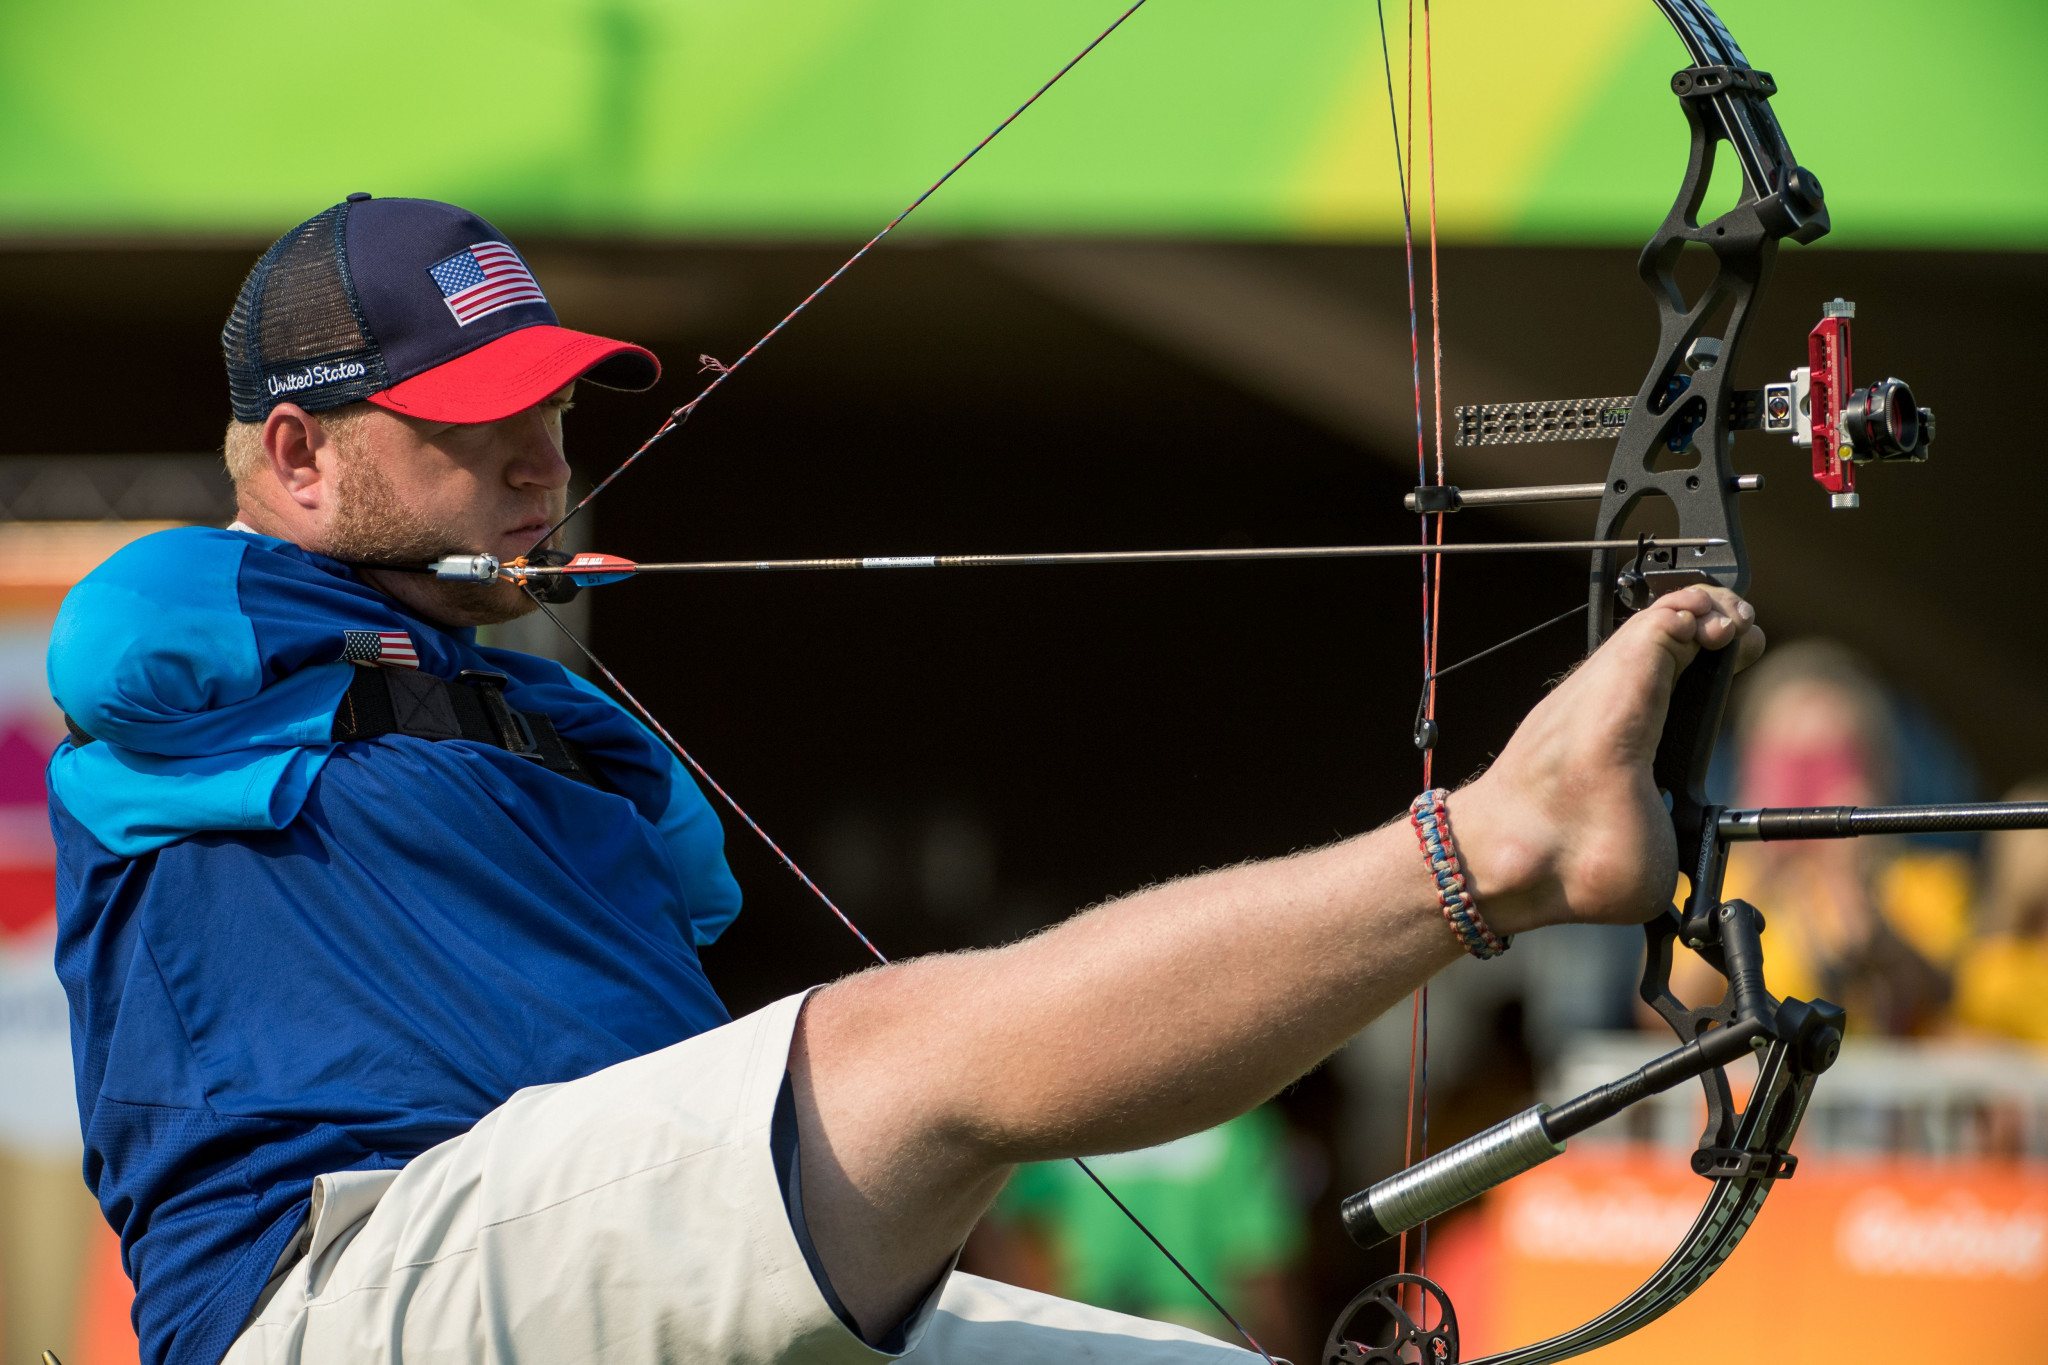 Archer Matt Stutzman from the United States won silver at the London 2012 Paralympic Games ©Getty Images